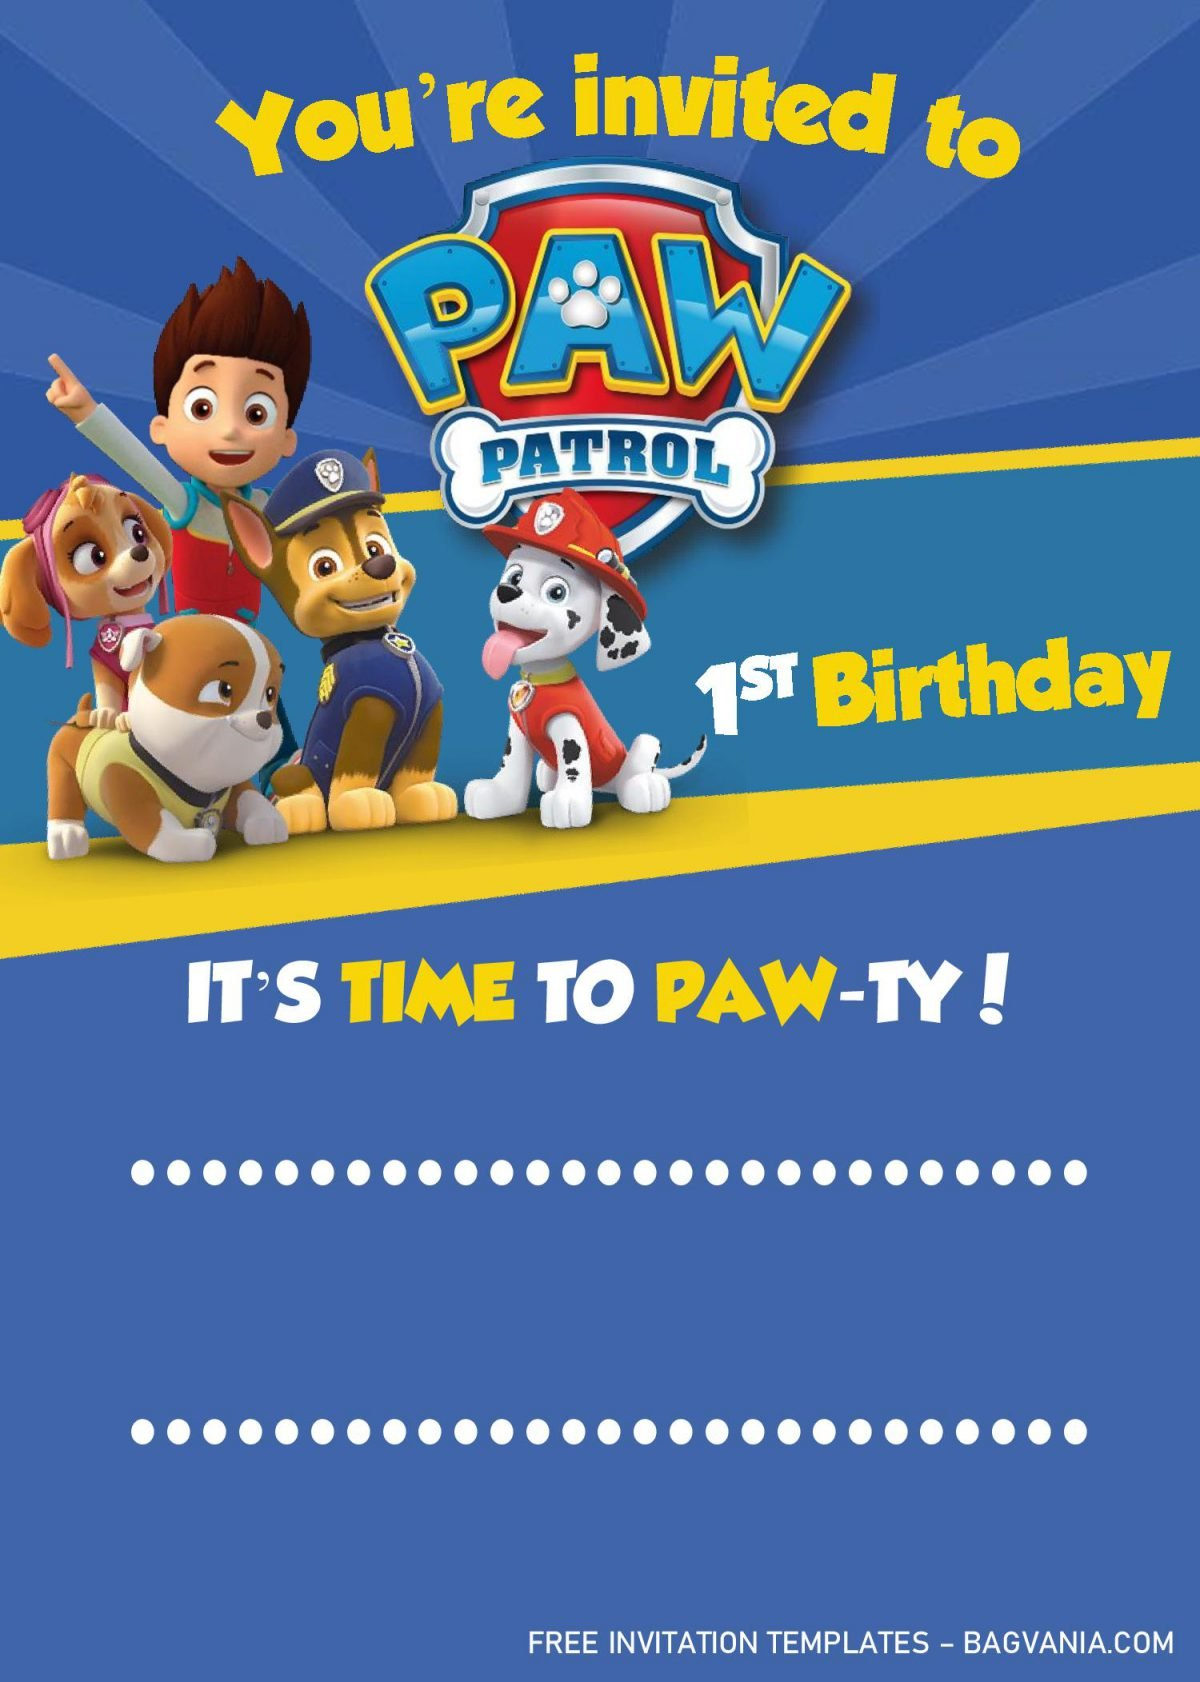 Paw Patrol Invitation Templates - Editable With MS Word and has blue background